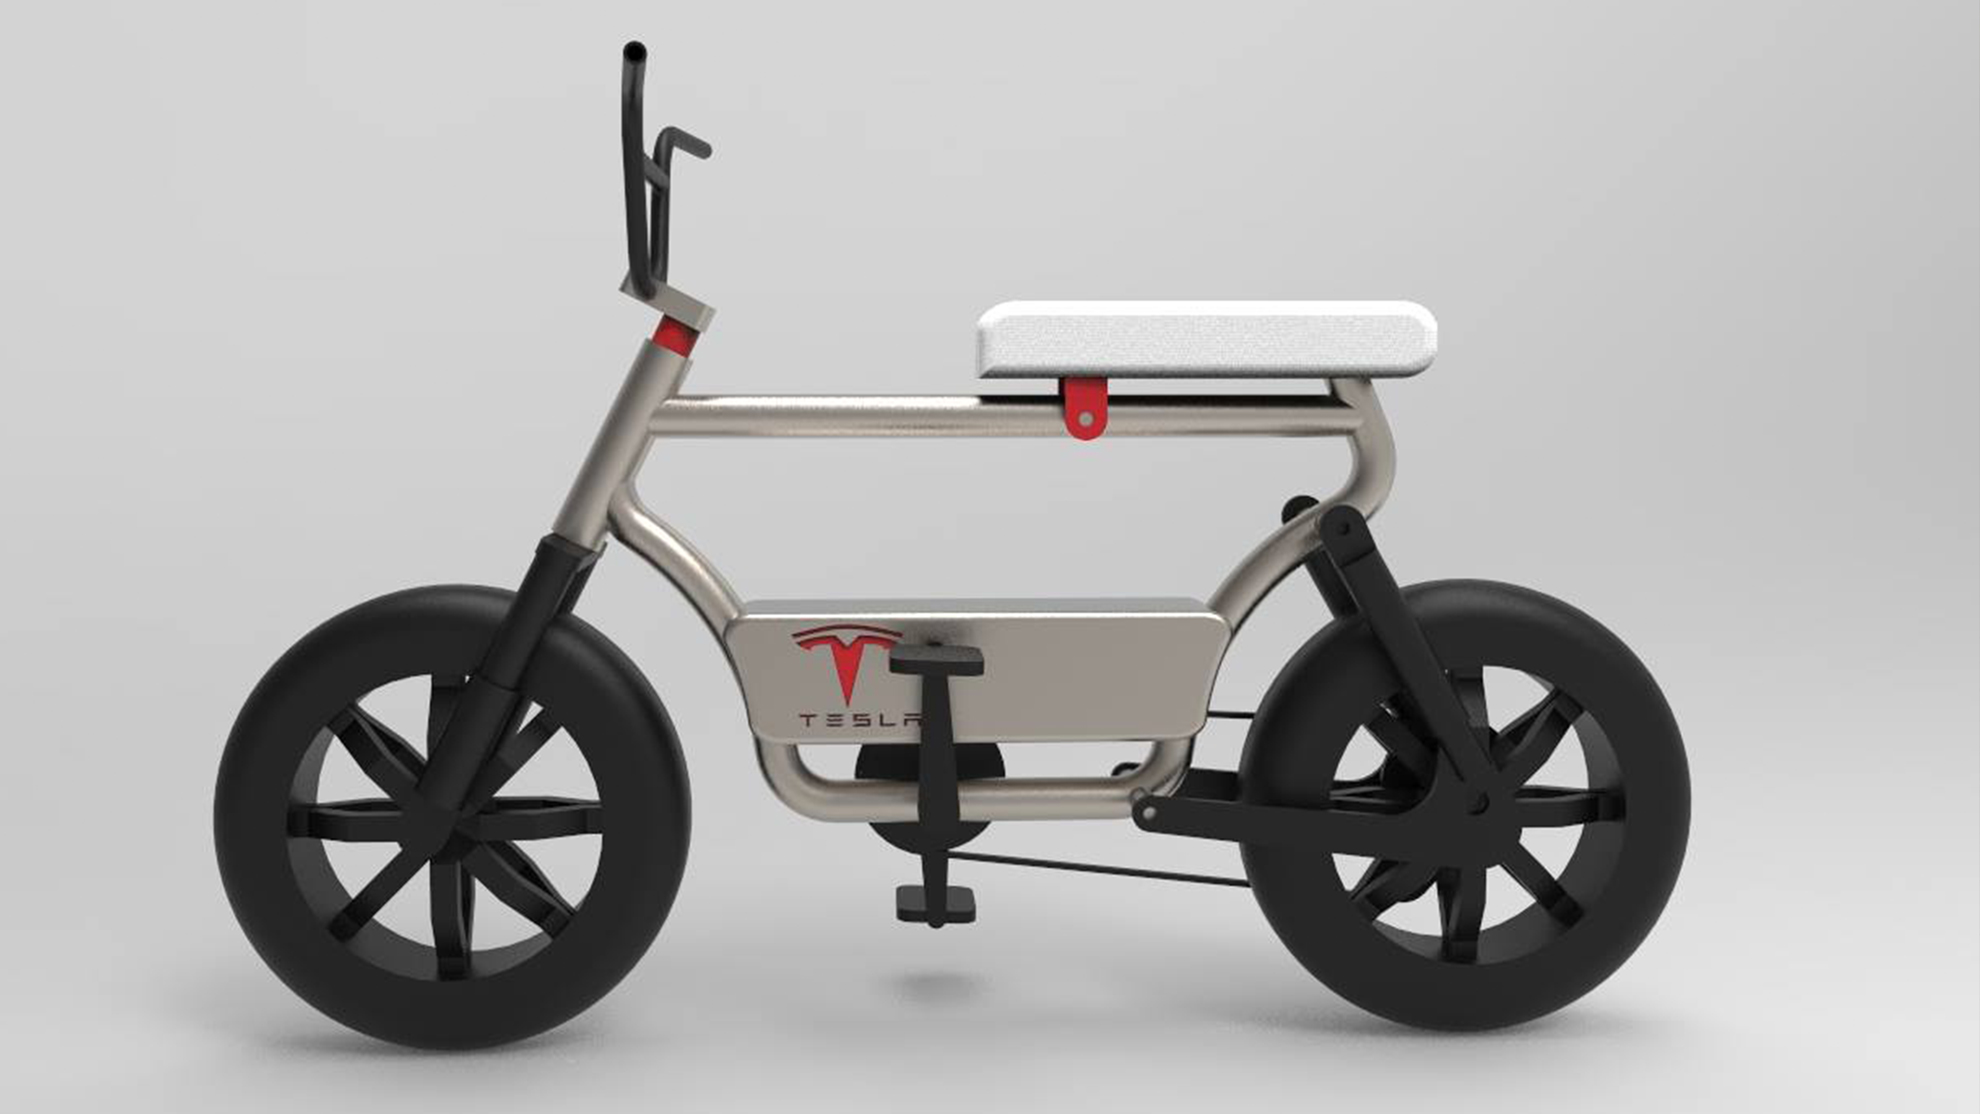 Original Ebike Creation by Joseph Rajakaruna – CirKit